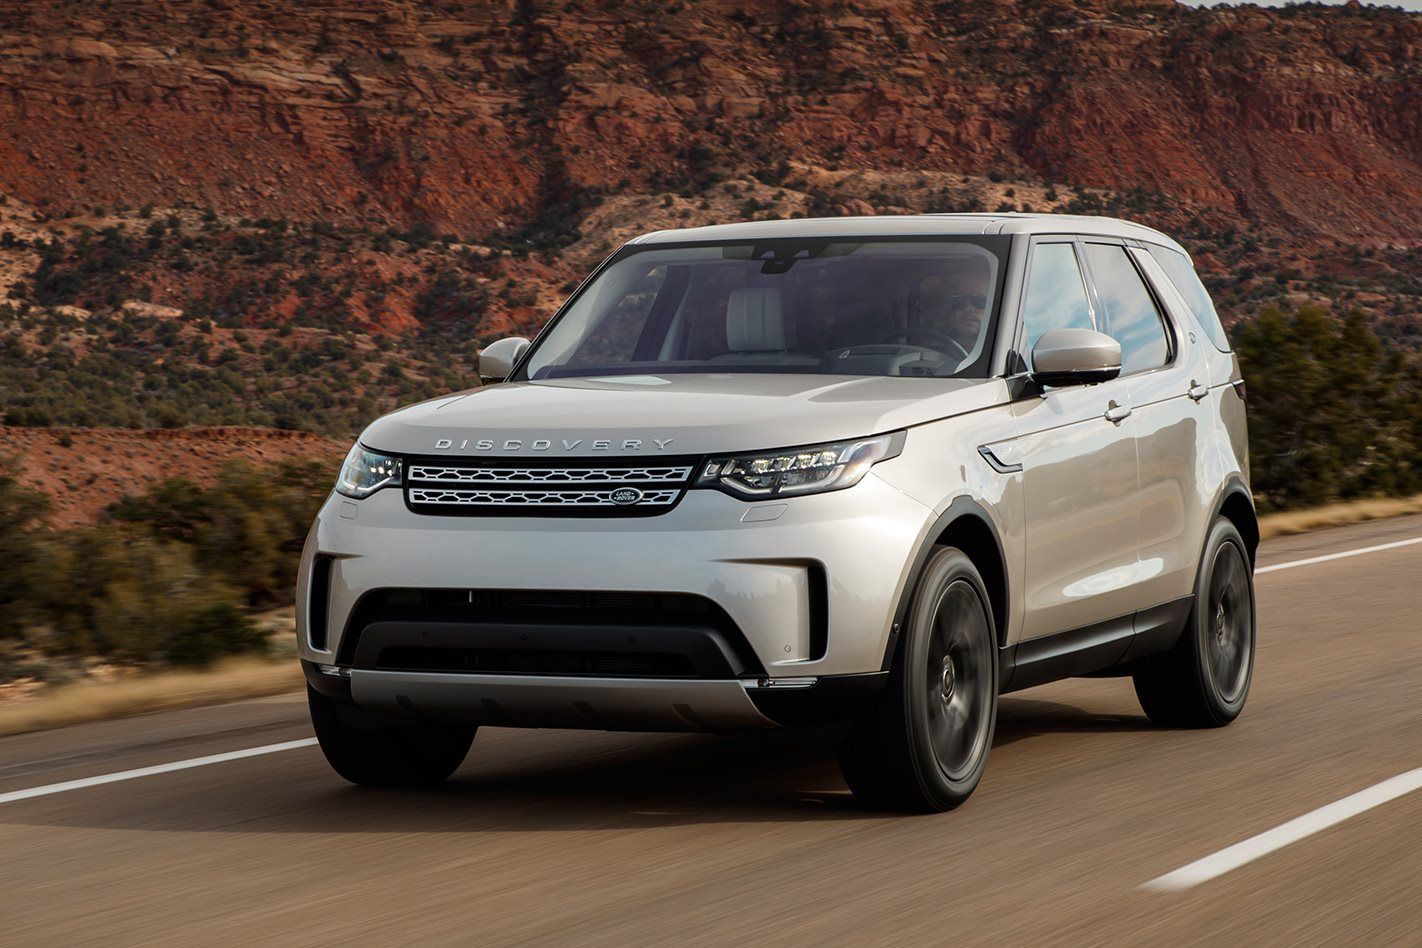 Land Rover Discovery Review - Alpina discovery review